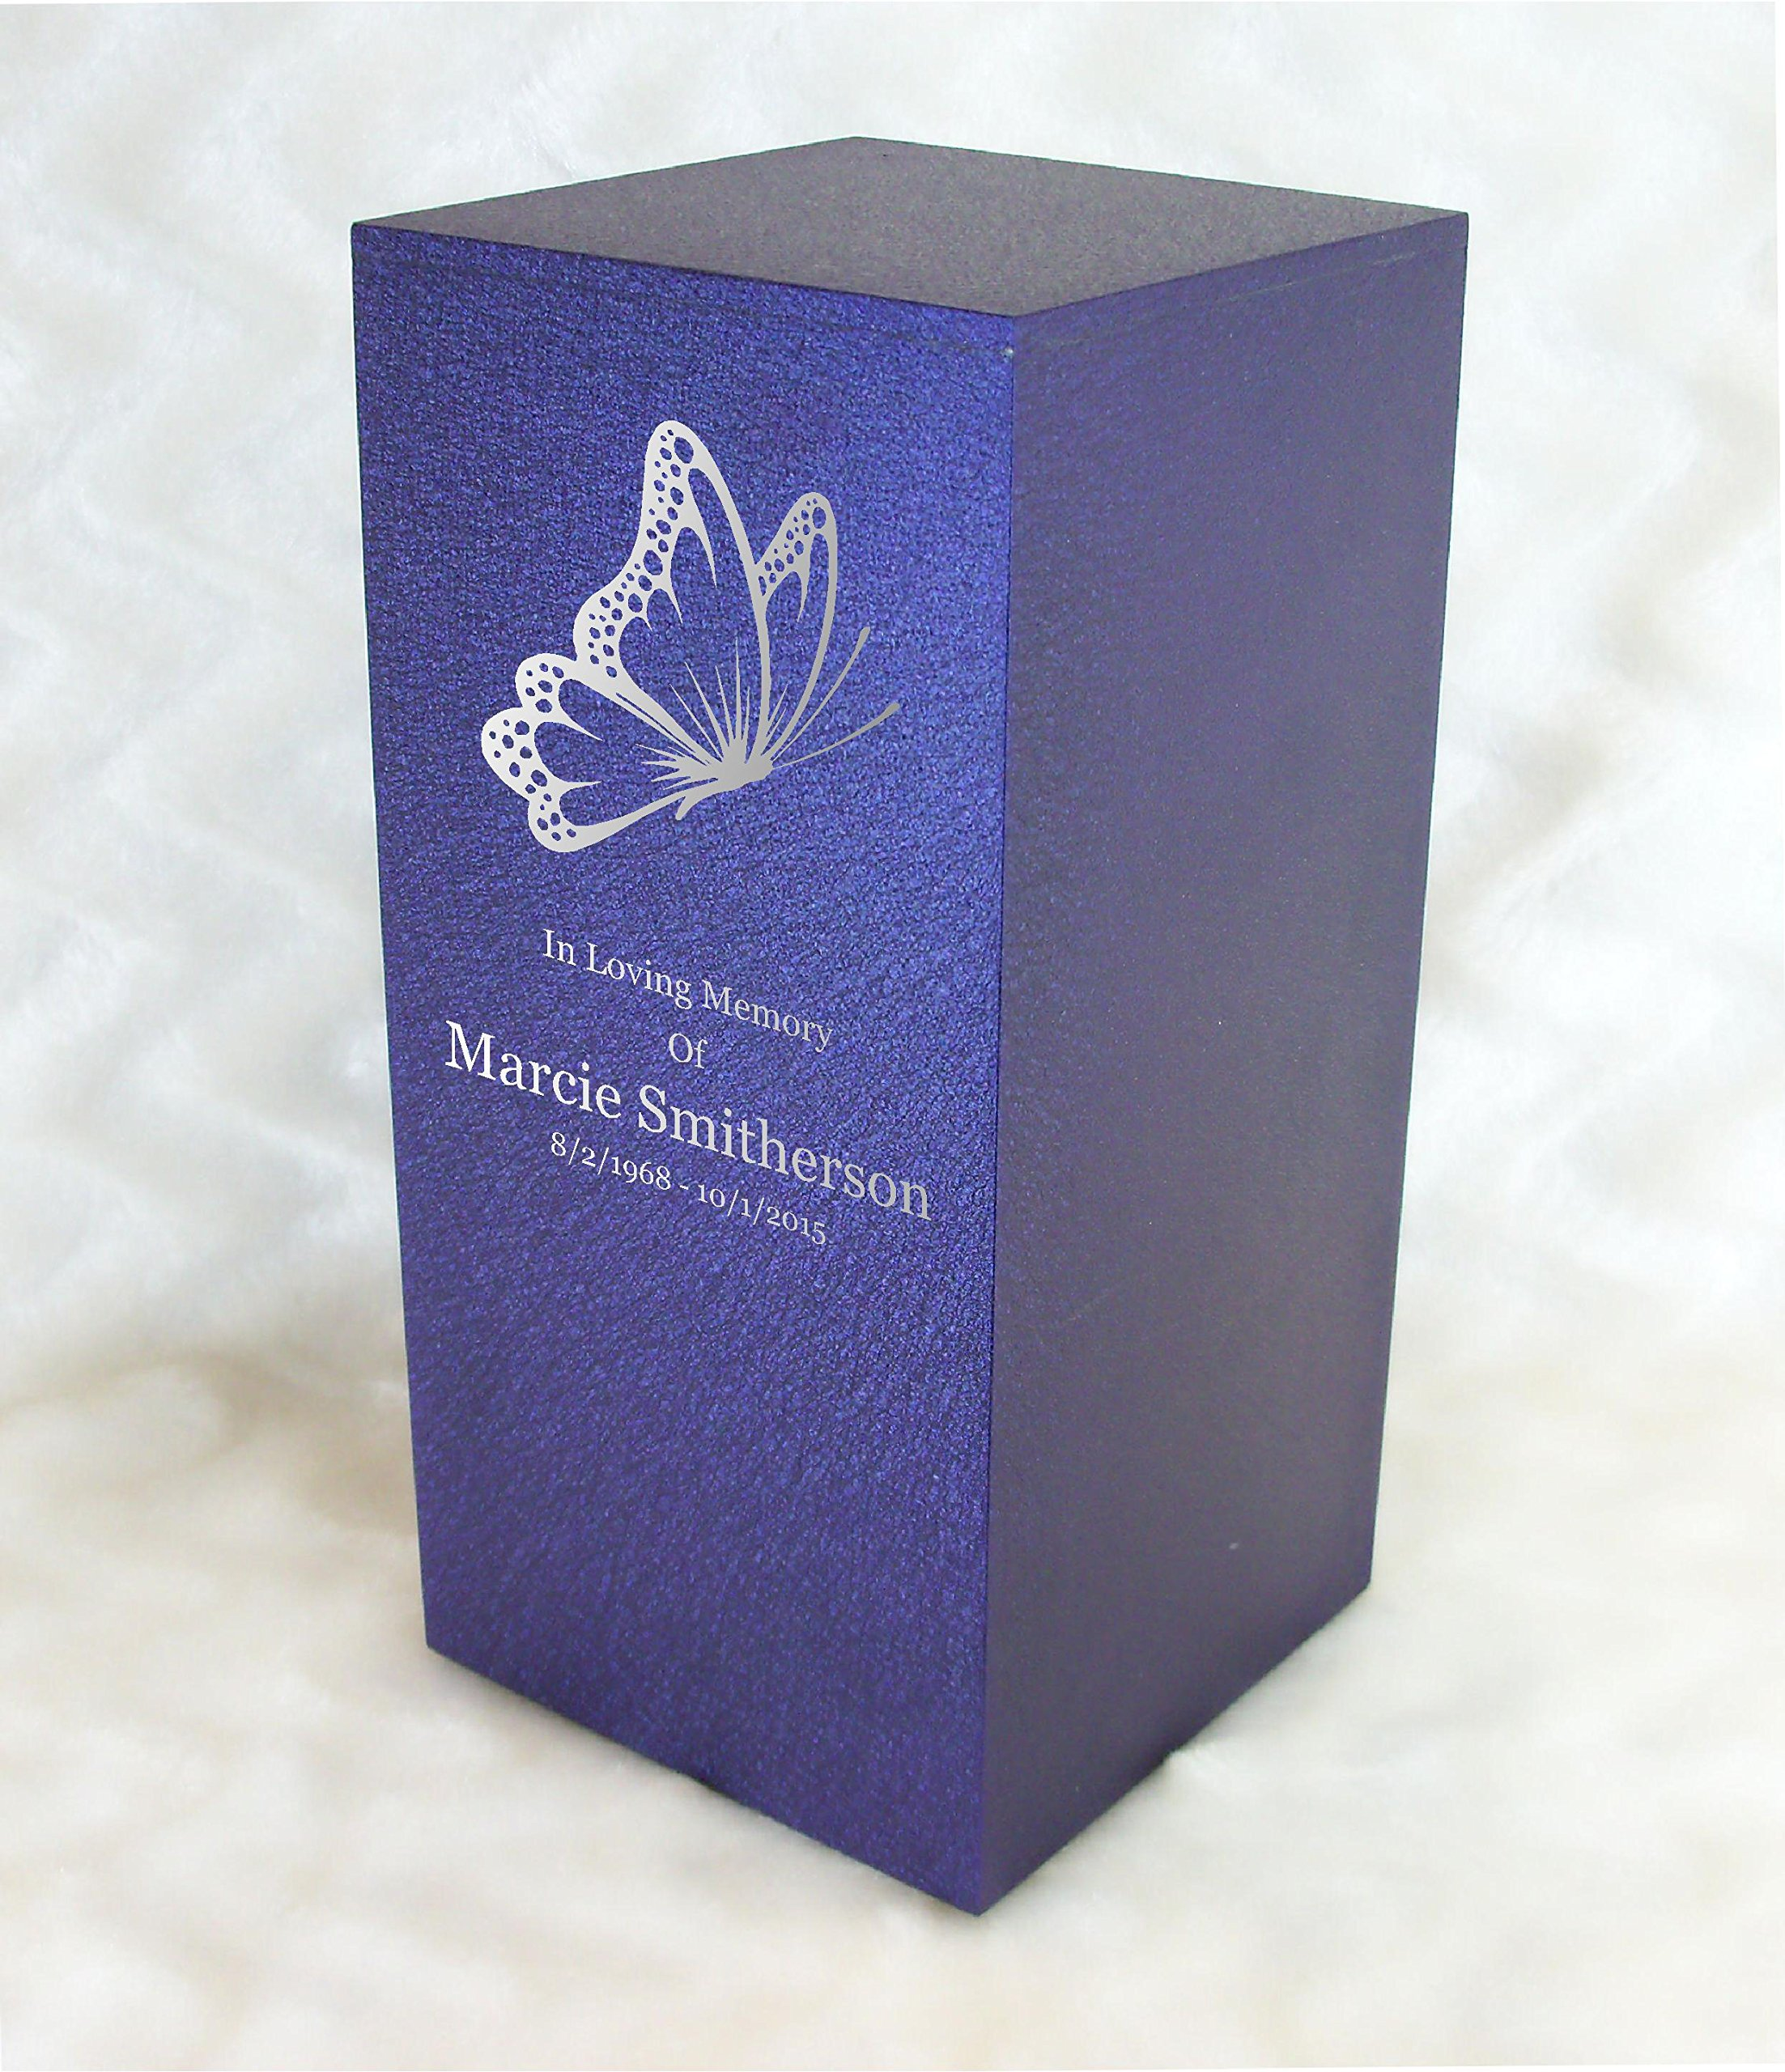 PERSONALIZED Custom Engraved Butterfly Cremation Urn Vault by Amaranthine Urns, made in America in the USA, Eaton DL (up to 200 lbs living weight) (Purple Velvet) by Amaranthine Urn Company